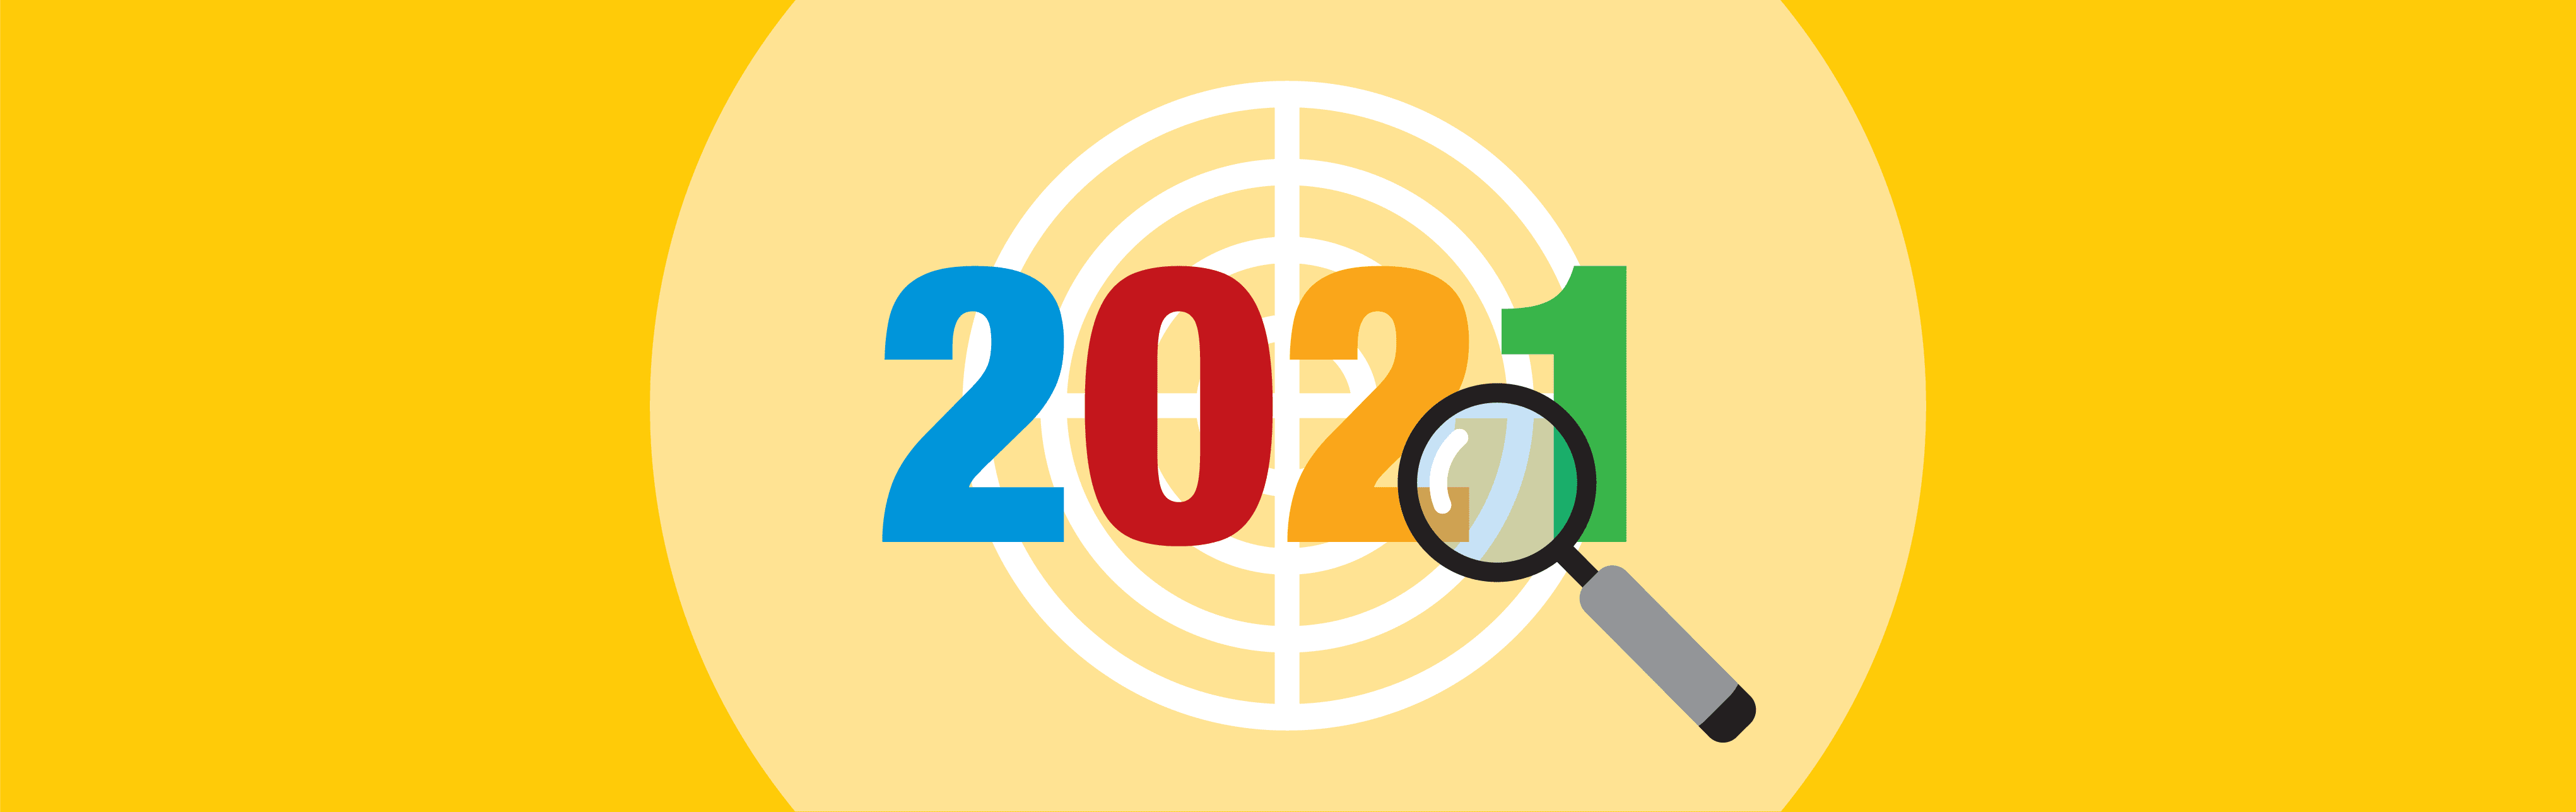 Google 2021 Ranking under the magnifying glass